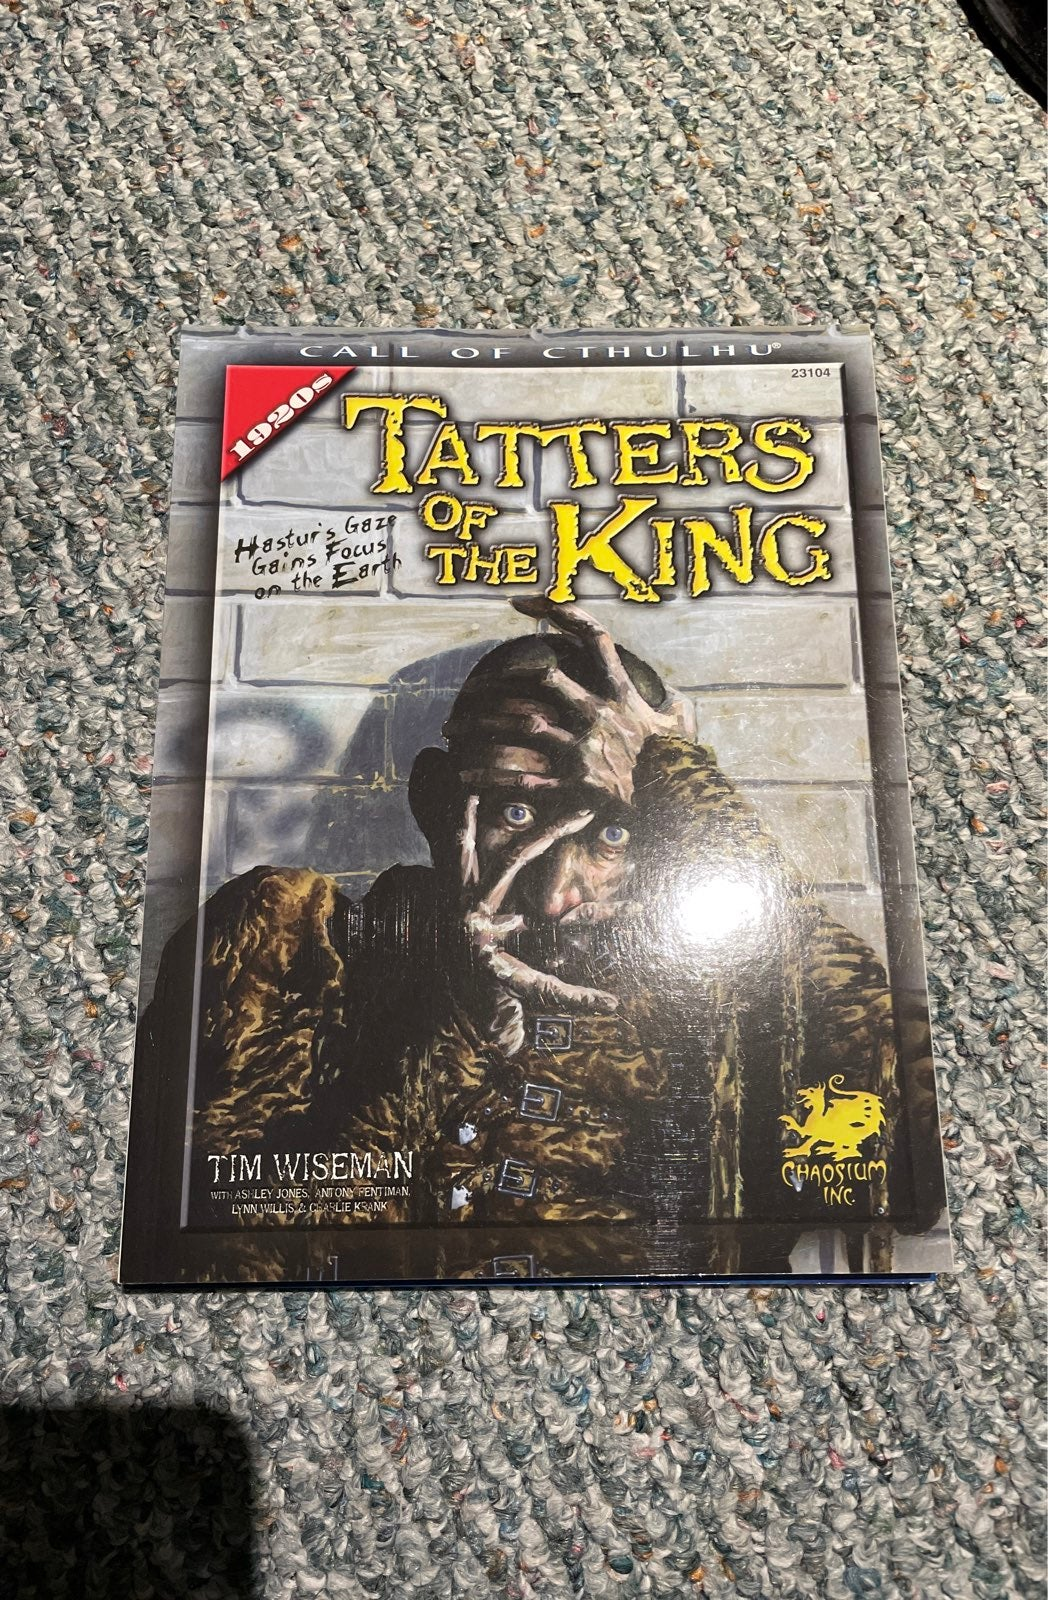 Call of Cthulhu : Tatters of the King